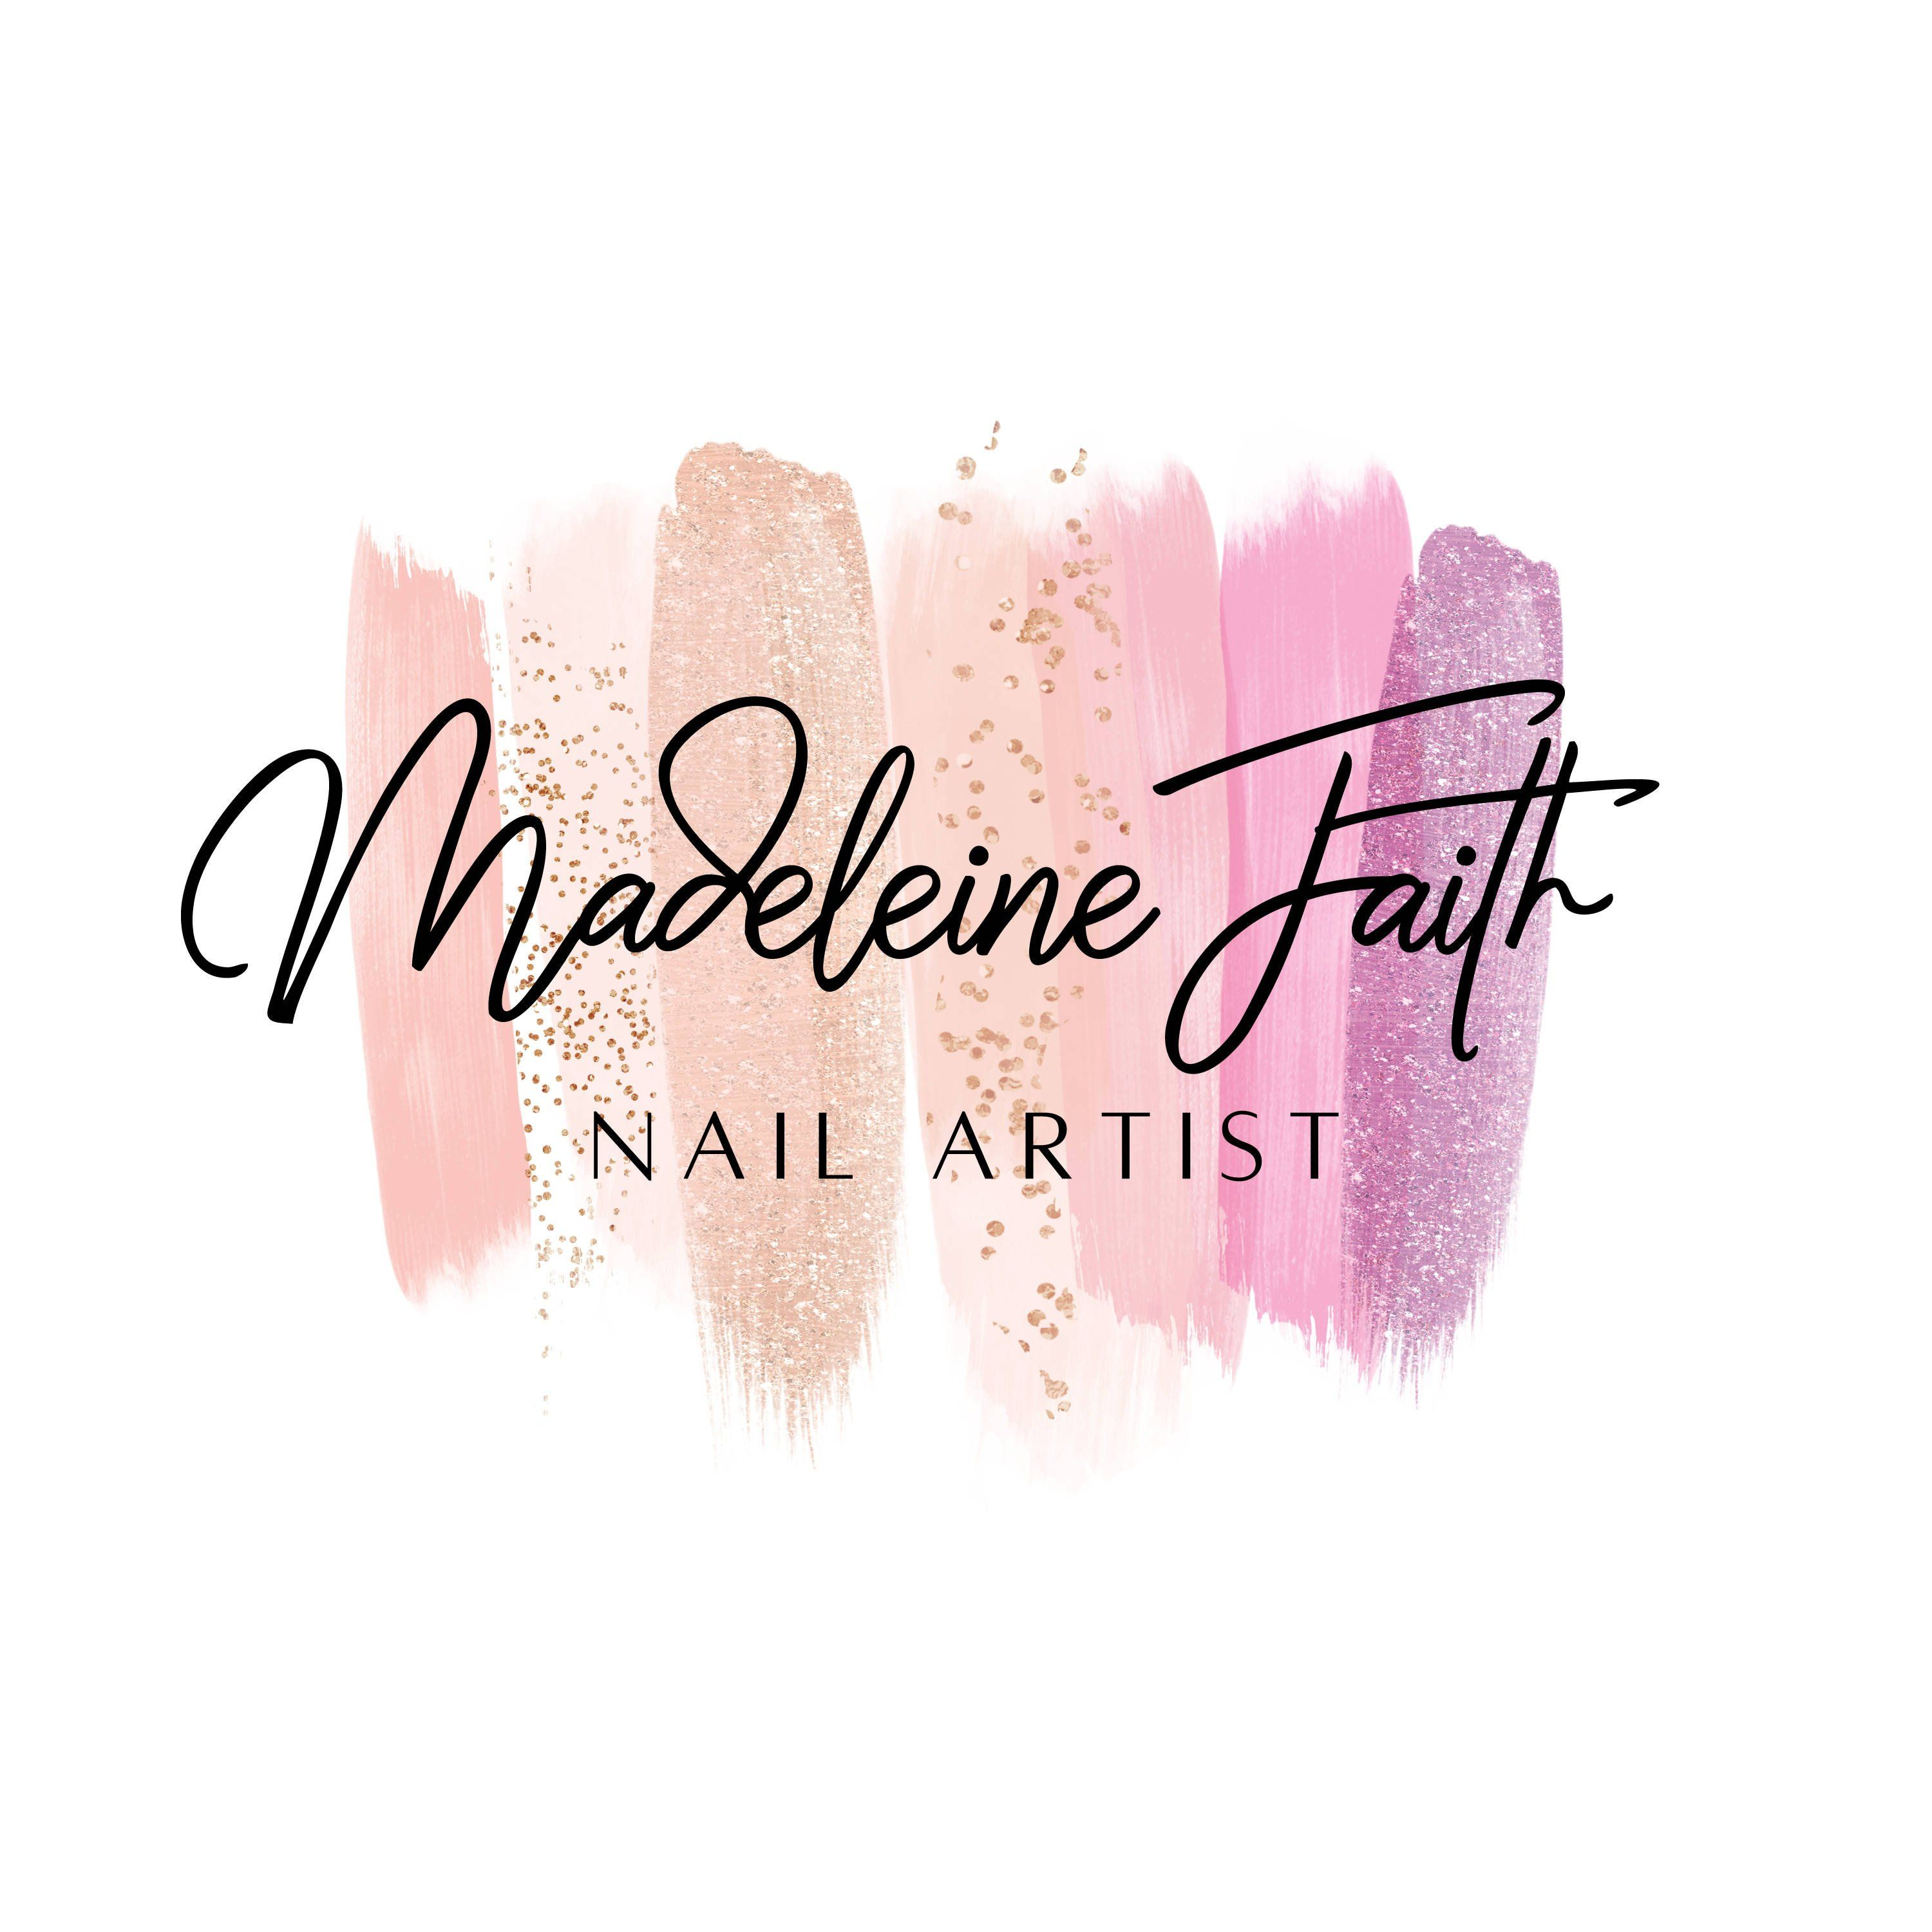 Nail Artist Beauty Makeup Logo Design, Nail Salon Logo